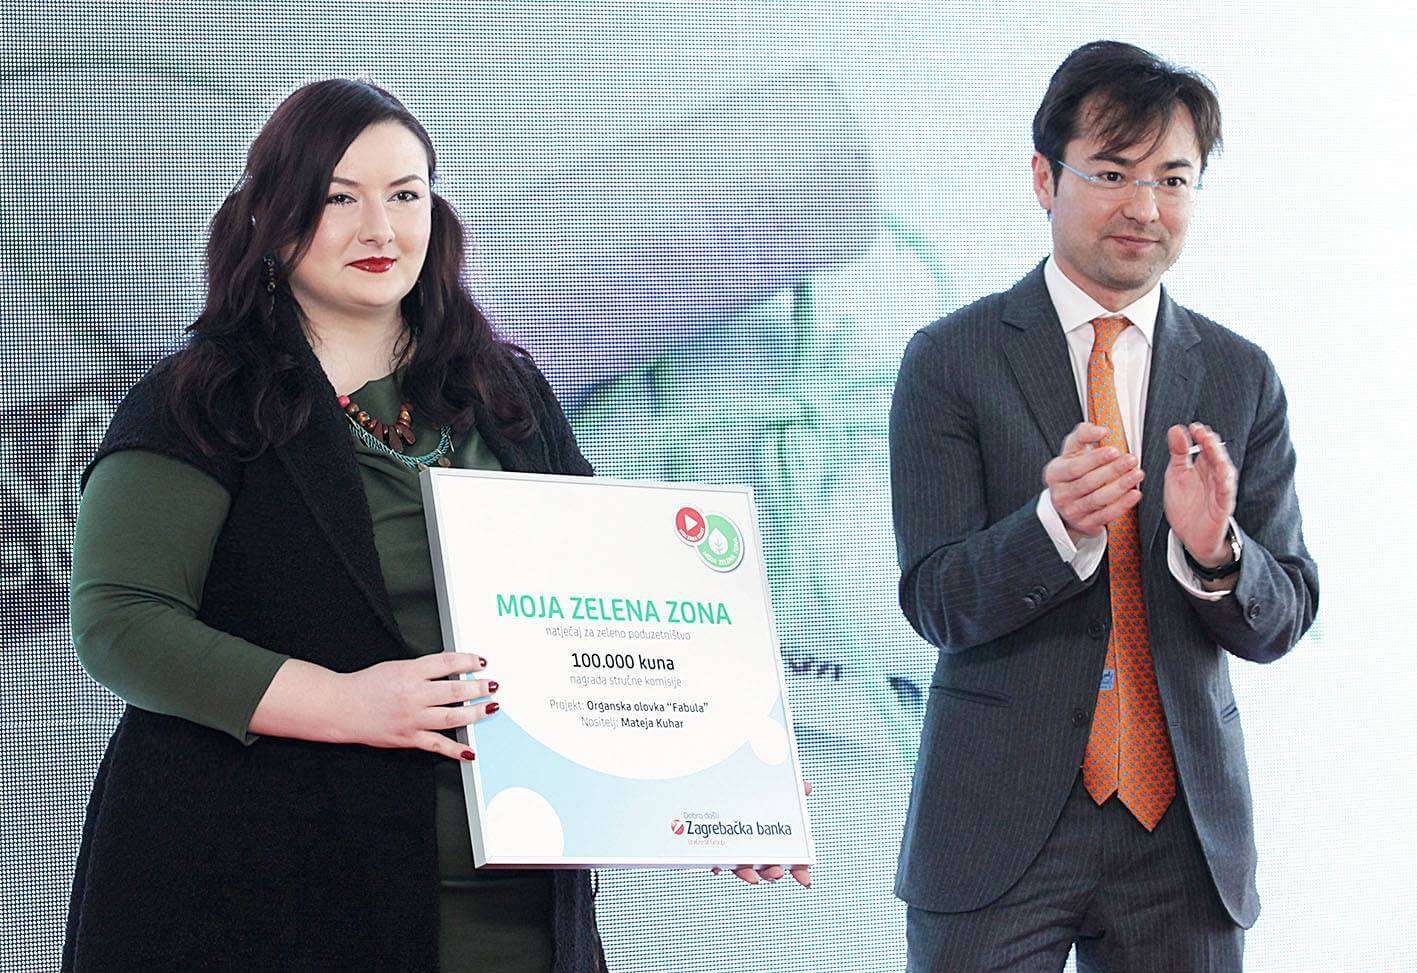 Green entrepreneurial award